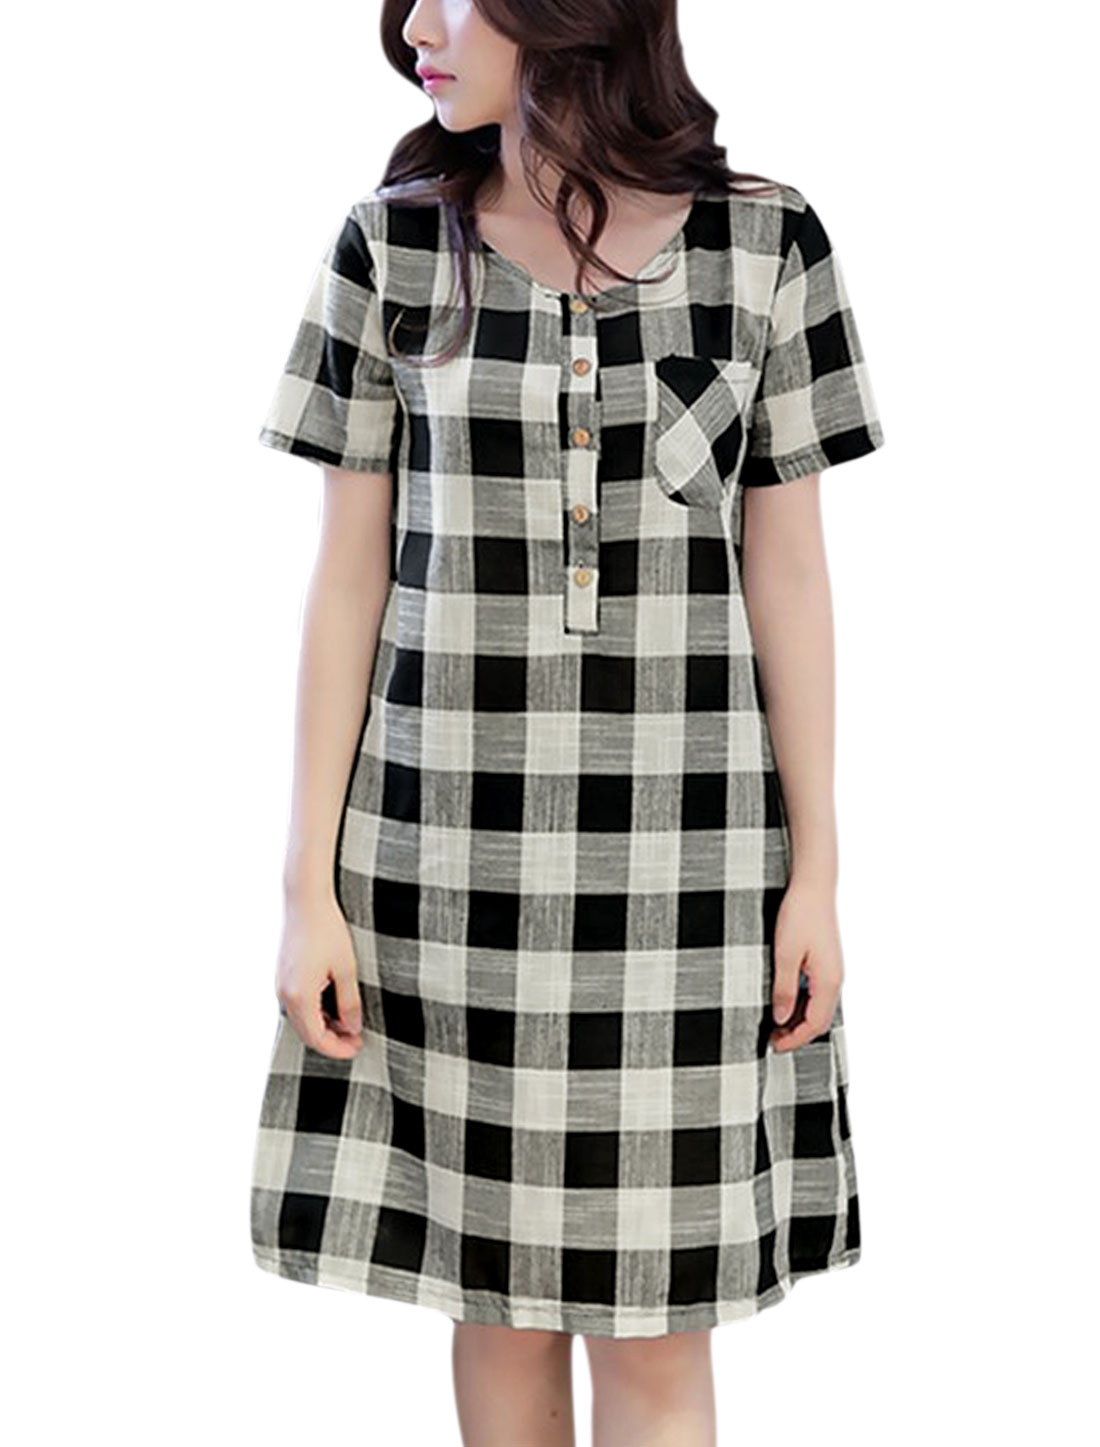 Women Checks Four-Button Placket Unlined Tunic Dress Black White M